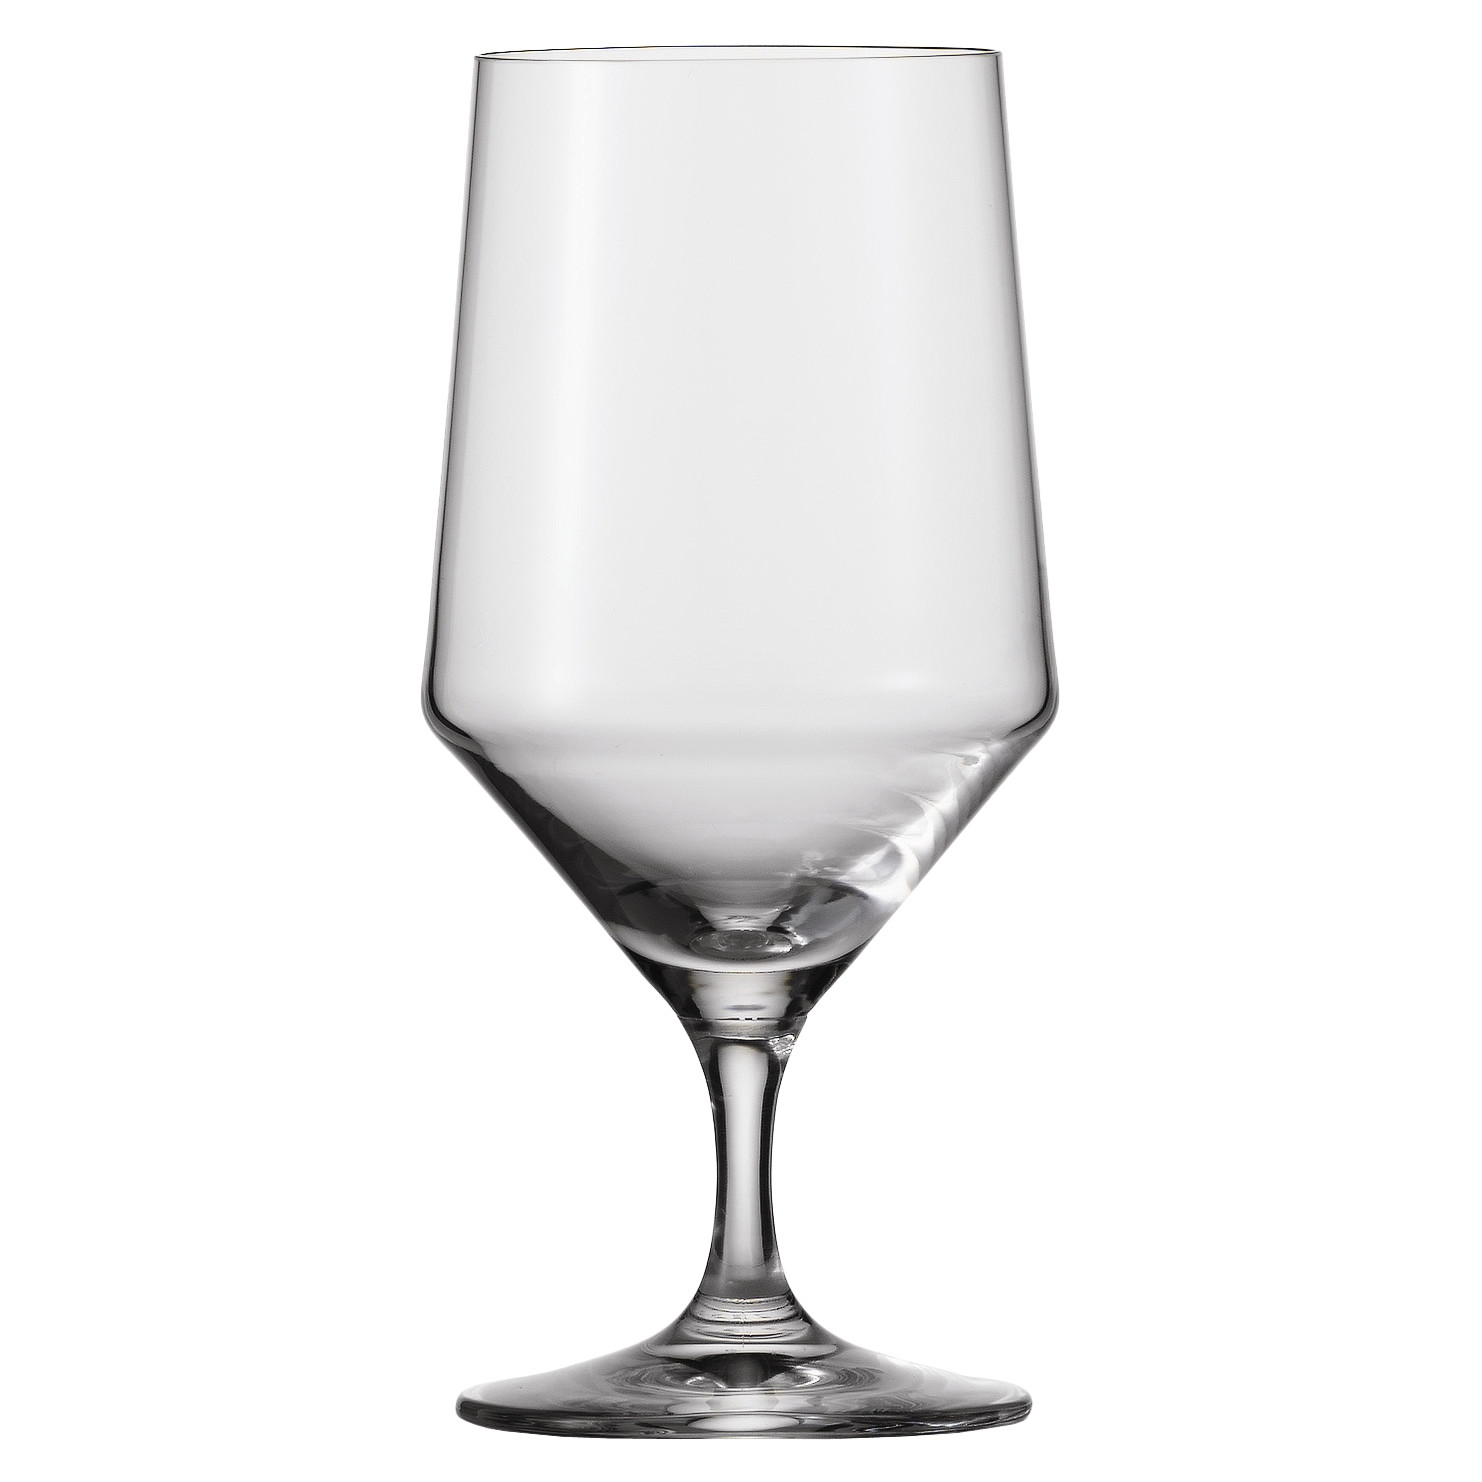 Schott Zwiesel Stemless | Replacement Wine Glasses | Schott Zwiesel Wine Glasses